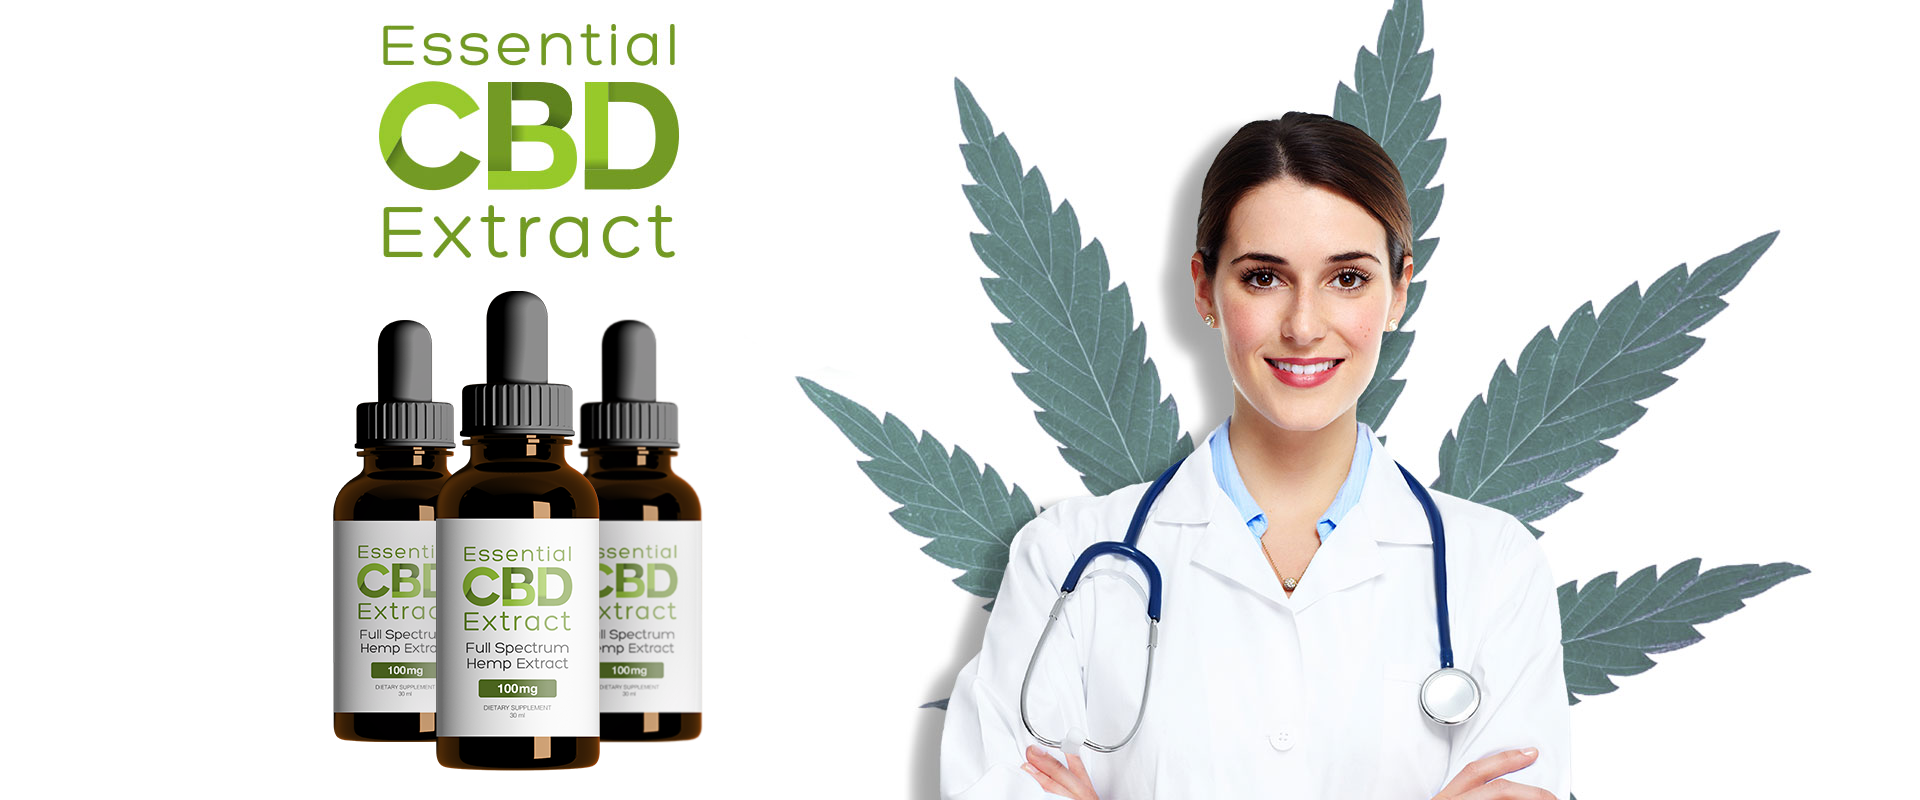 essential-cbd-extract-australia-offers-airherald